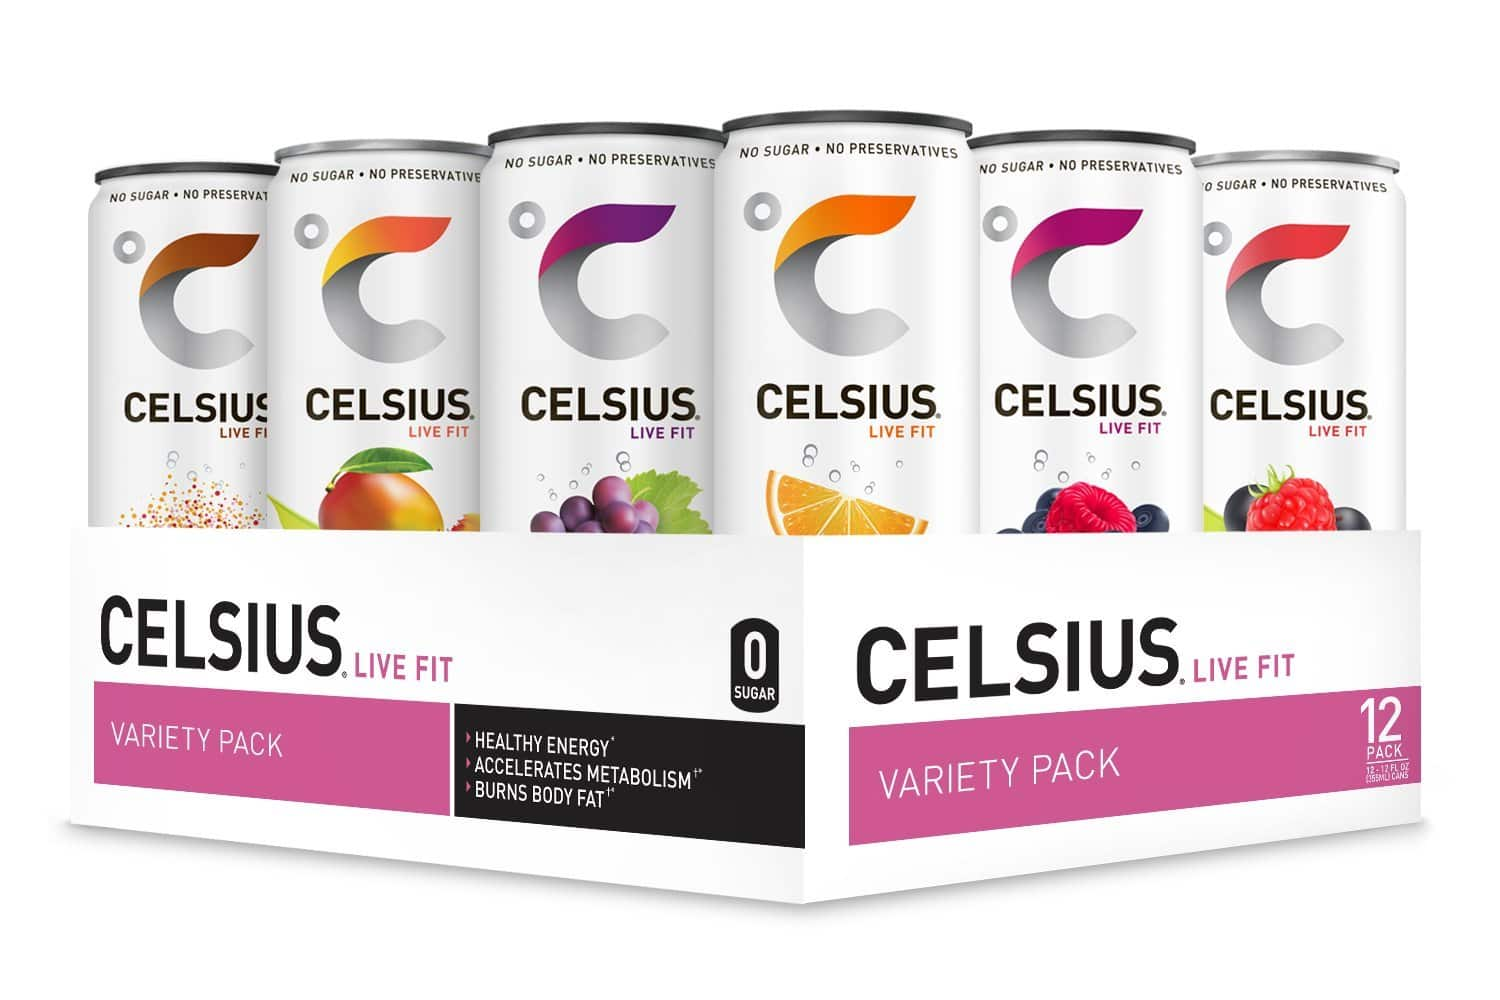 CELSIUS Fitness Drinks (Various Flavors), Zero Sugar, 12oz. Slim Can (Pack of 12) for $16.80 (15% off first S&S order)